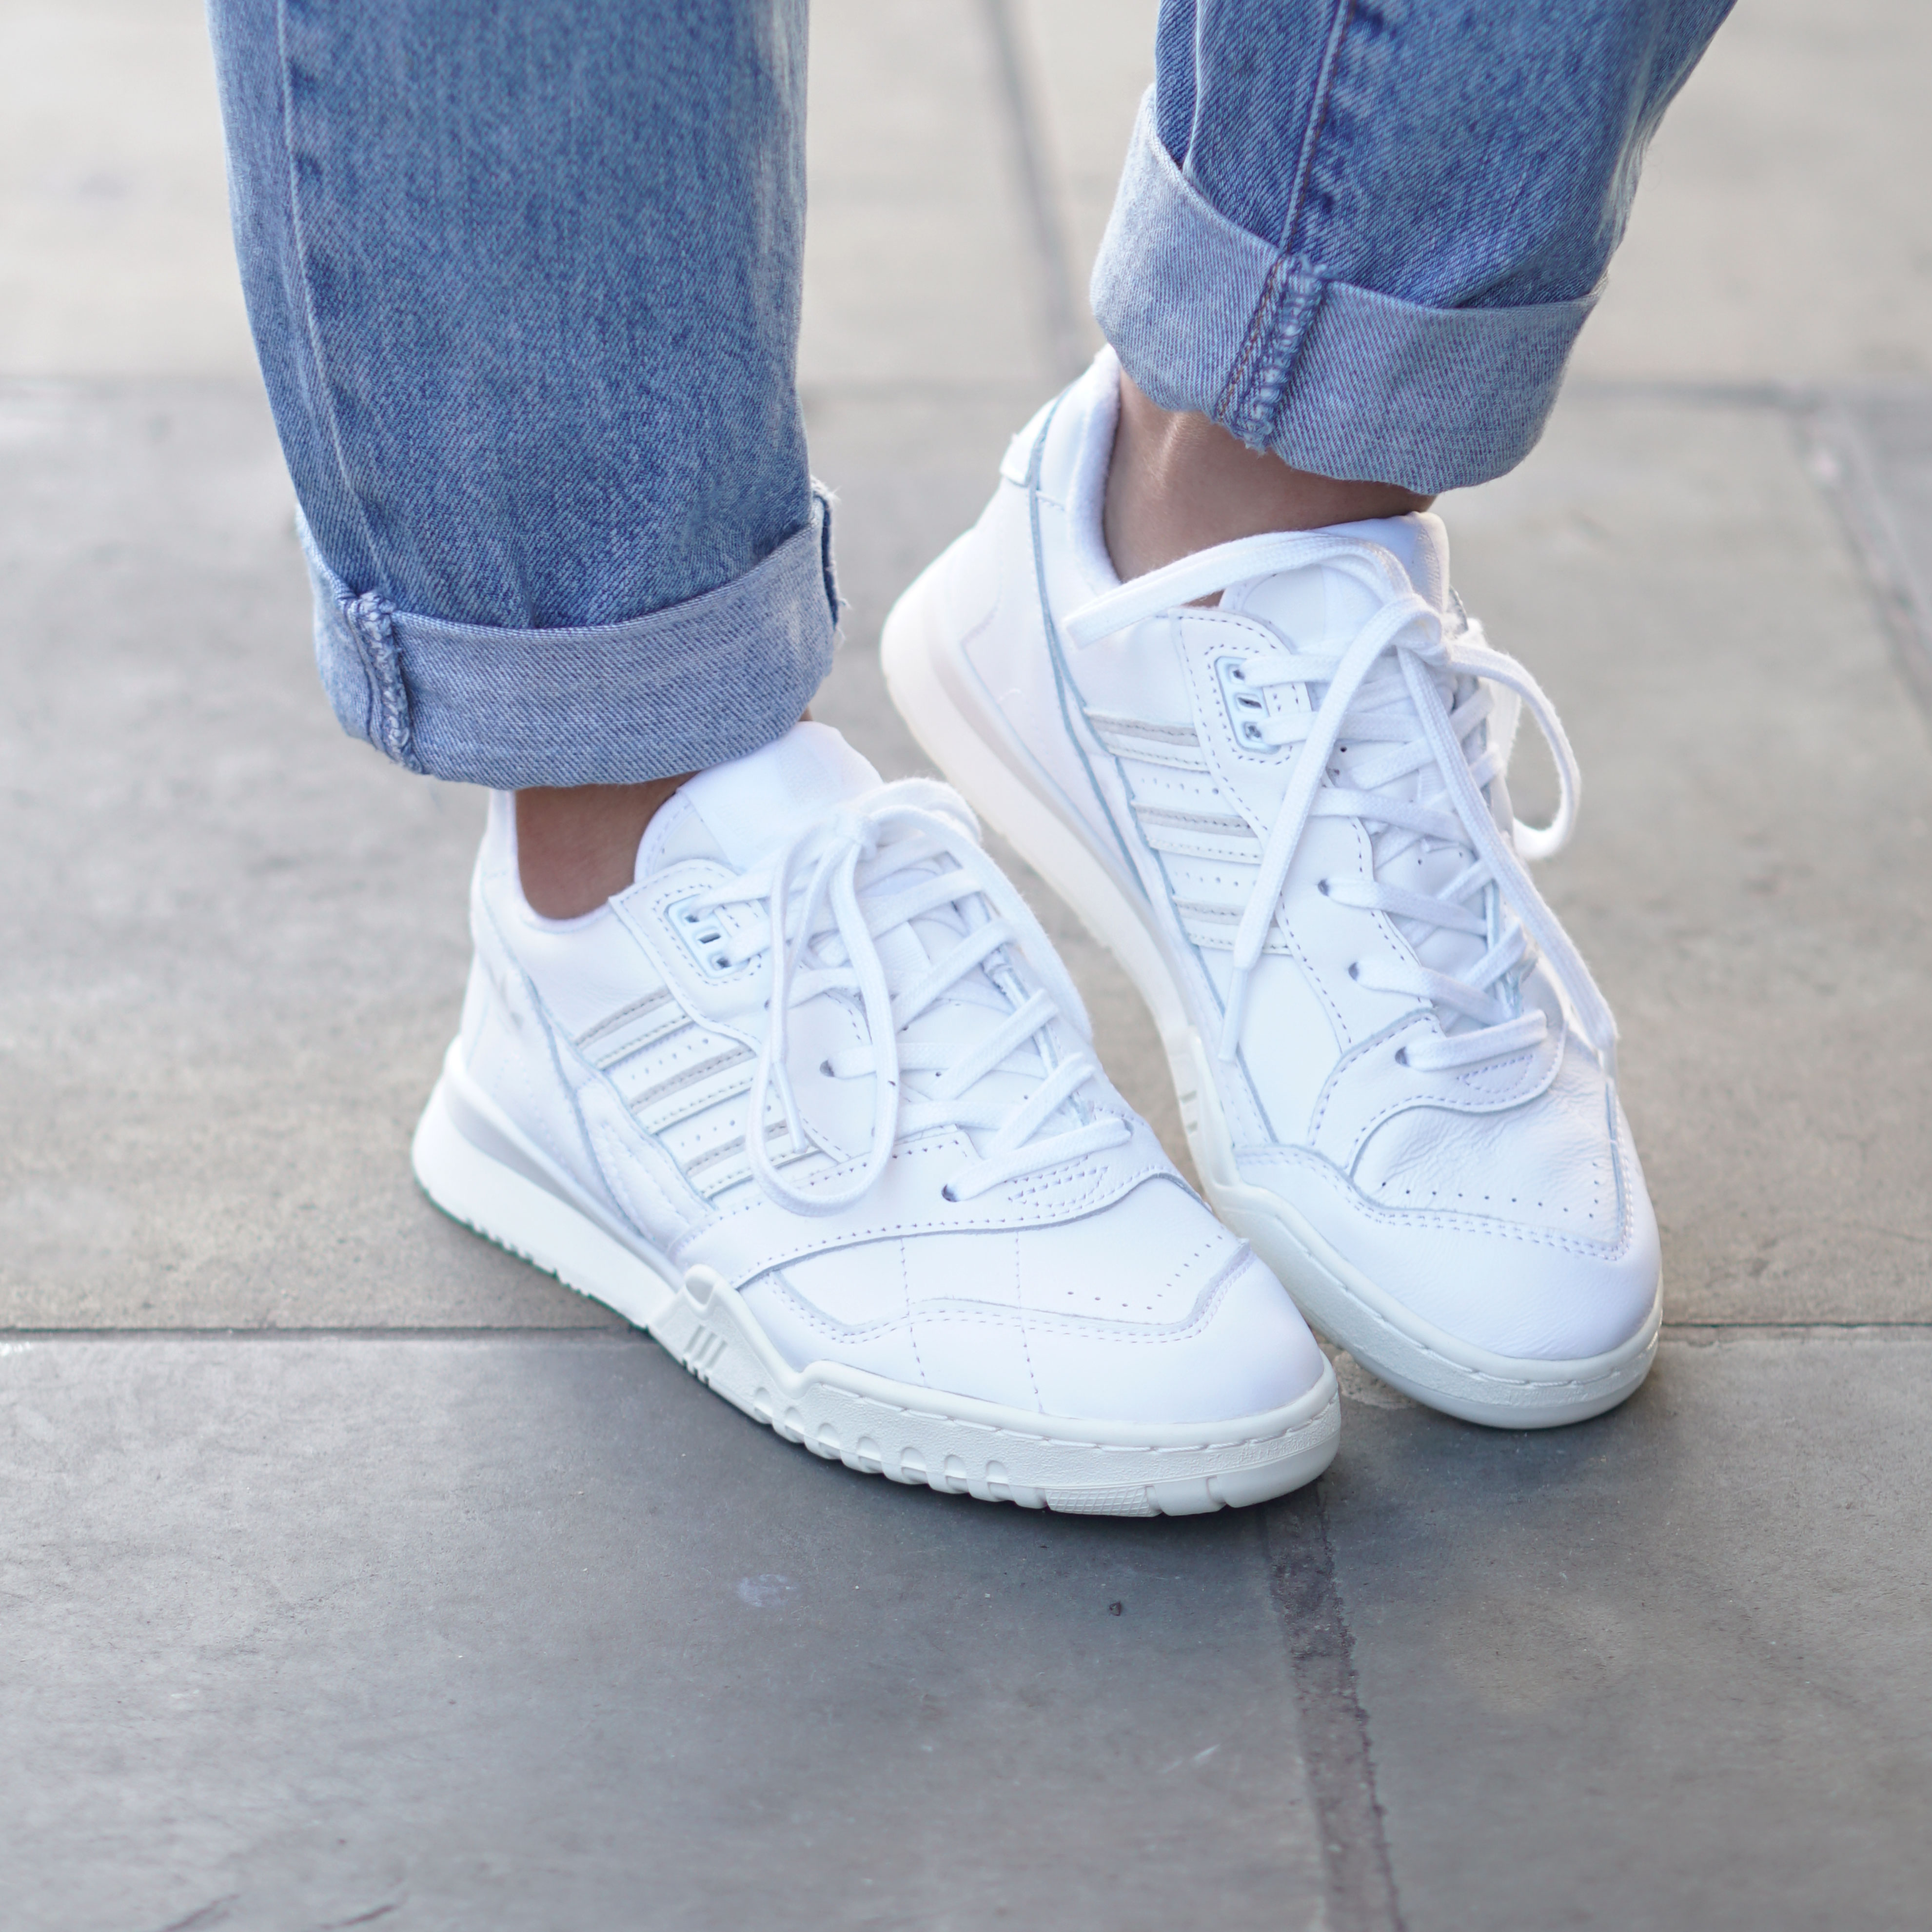 sports shoes b088c f4d1d The adidas A.R Trainer Has Arrived